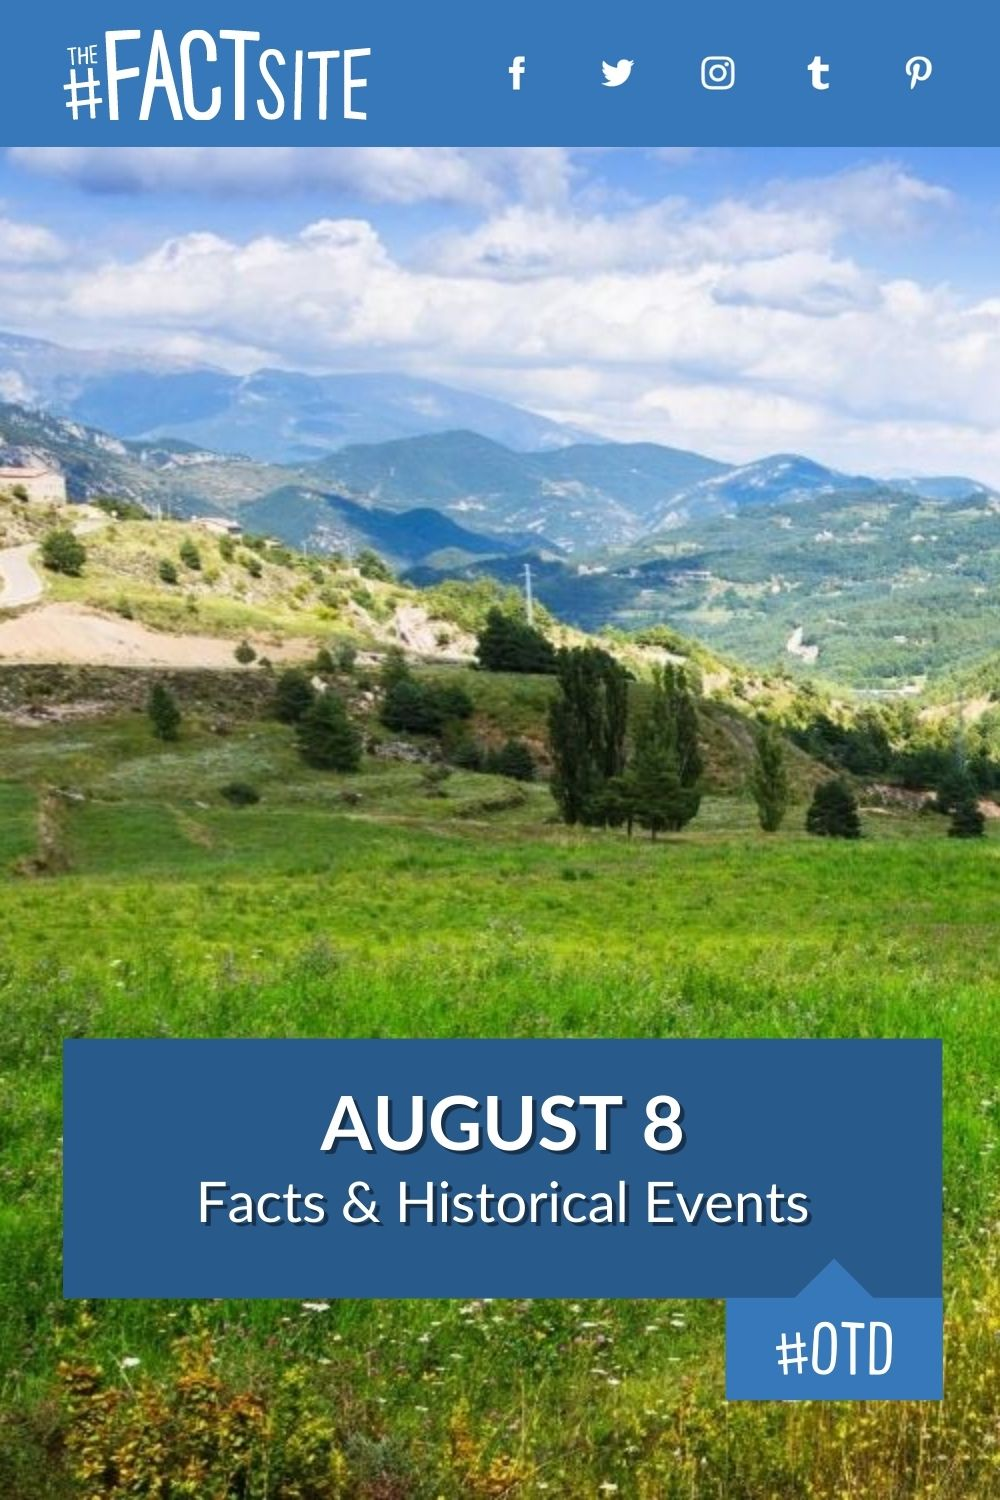 Facts & Historic Events That Happened on August 8